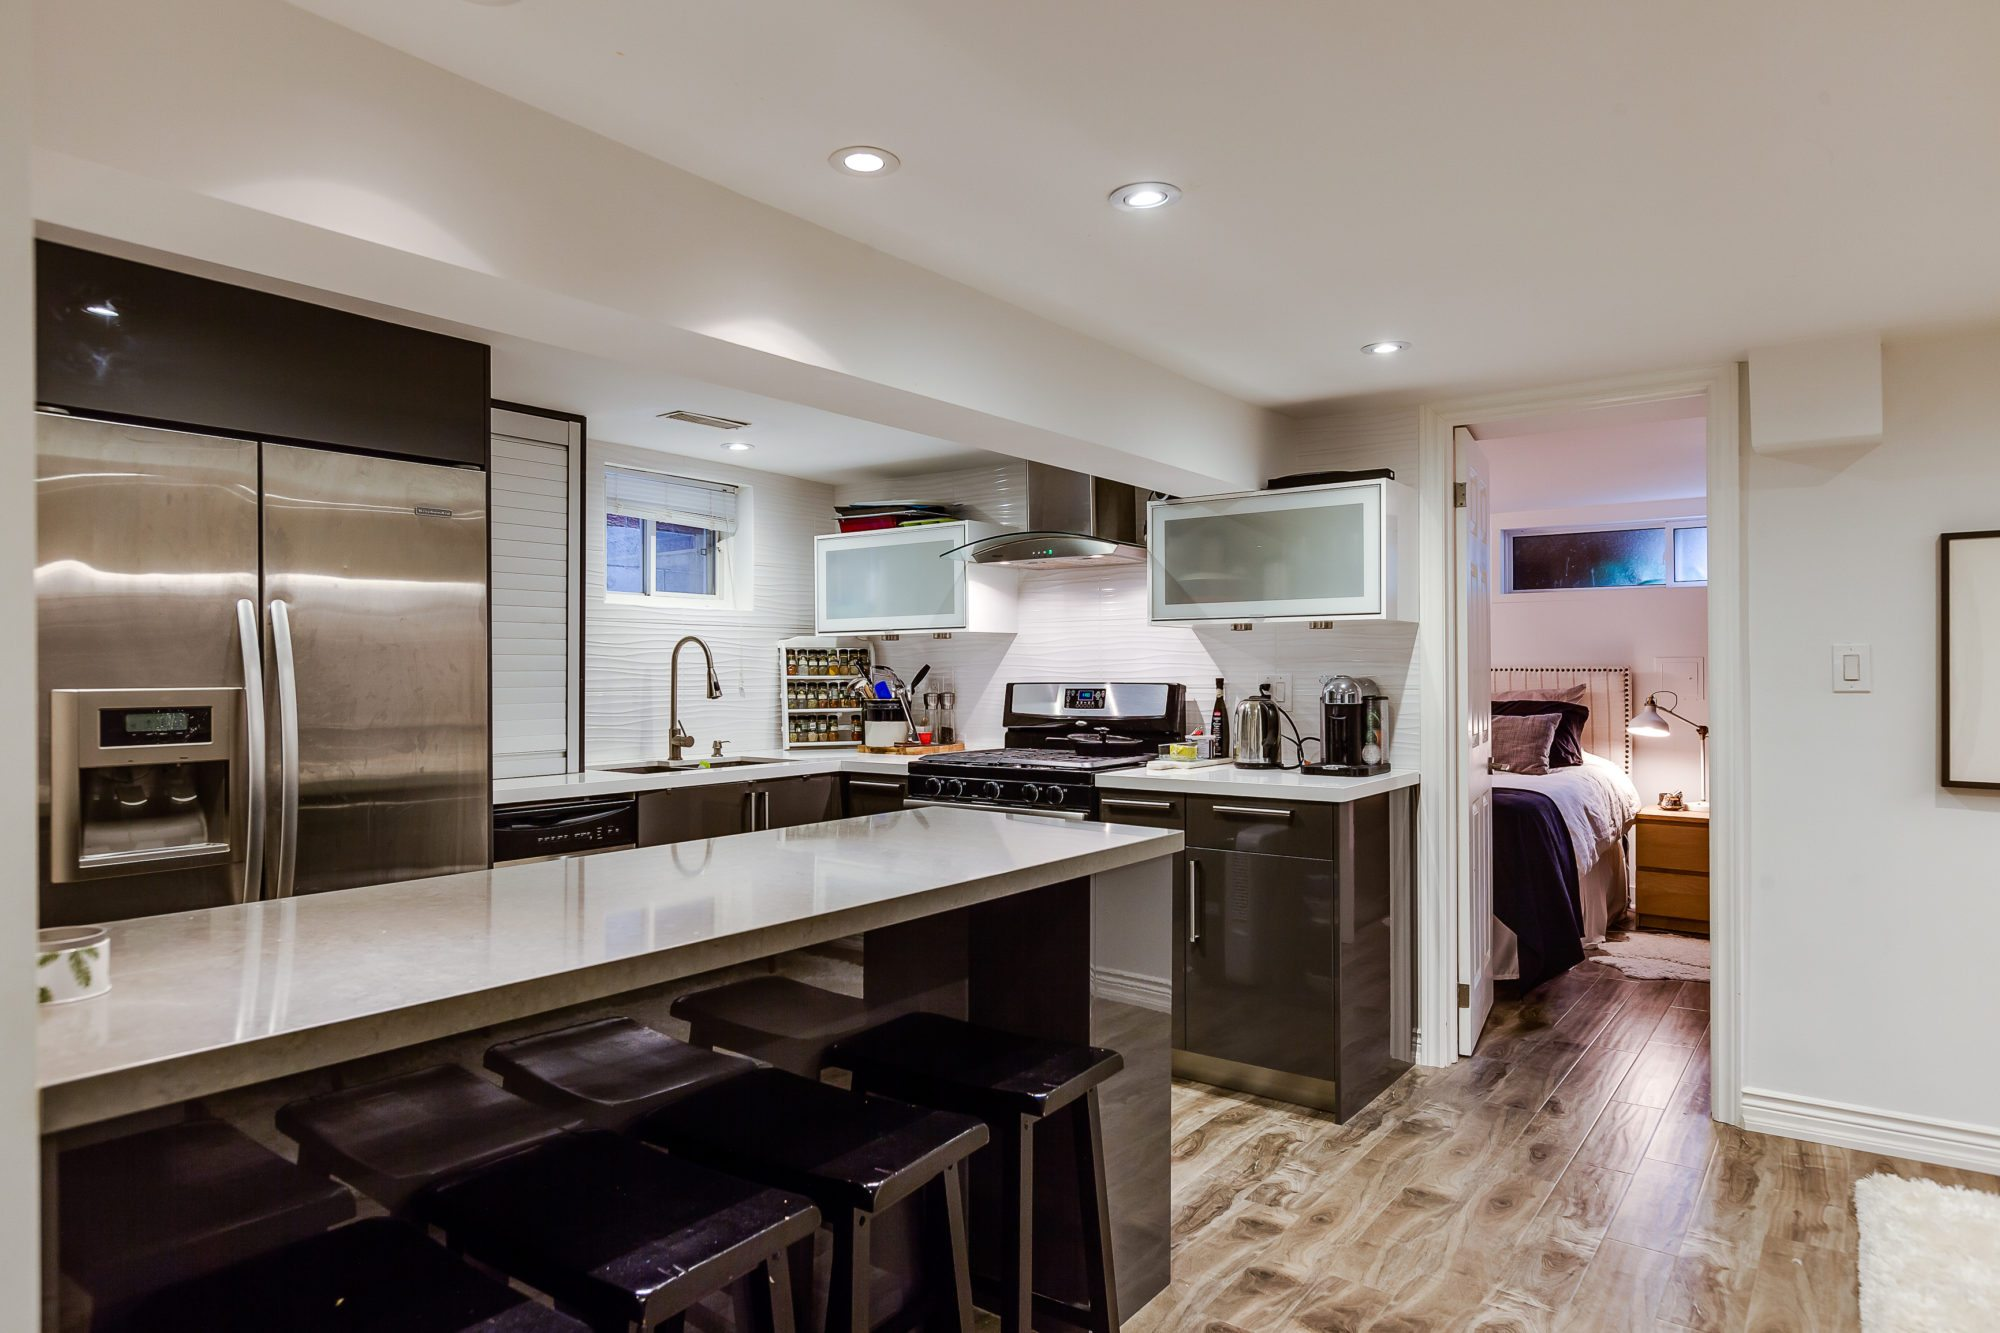 toronto-house-for-sale-118-givins-street-14